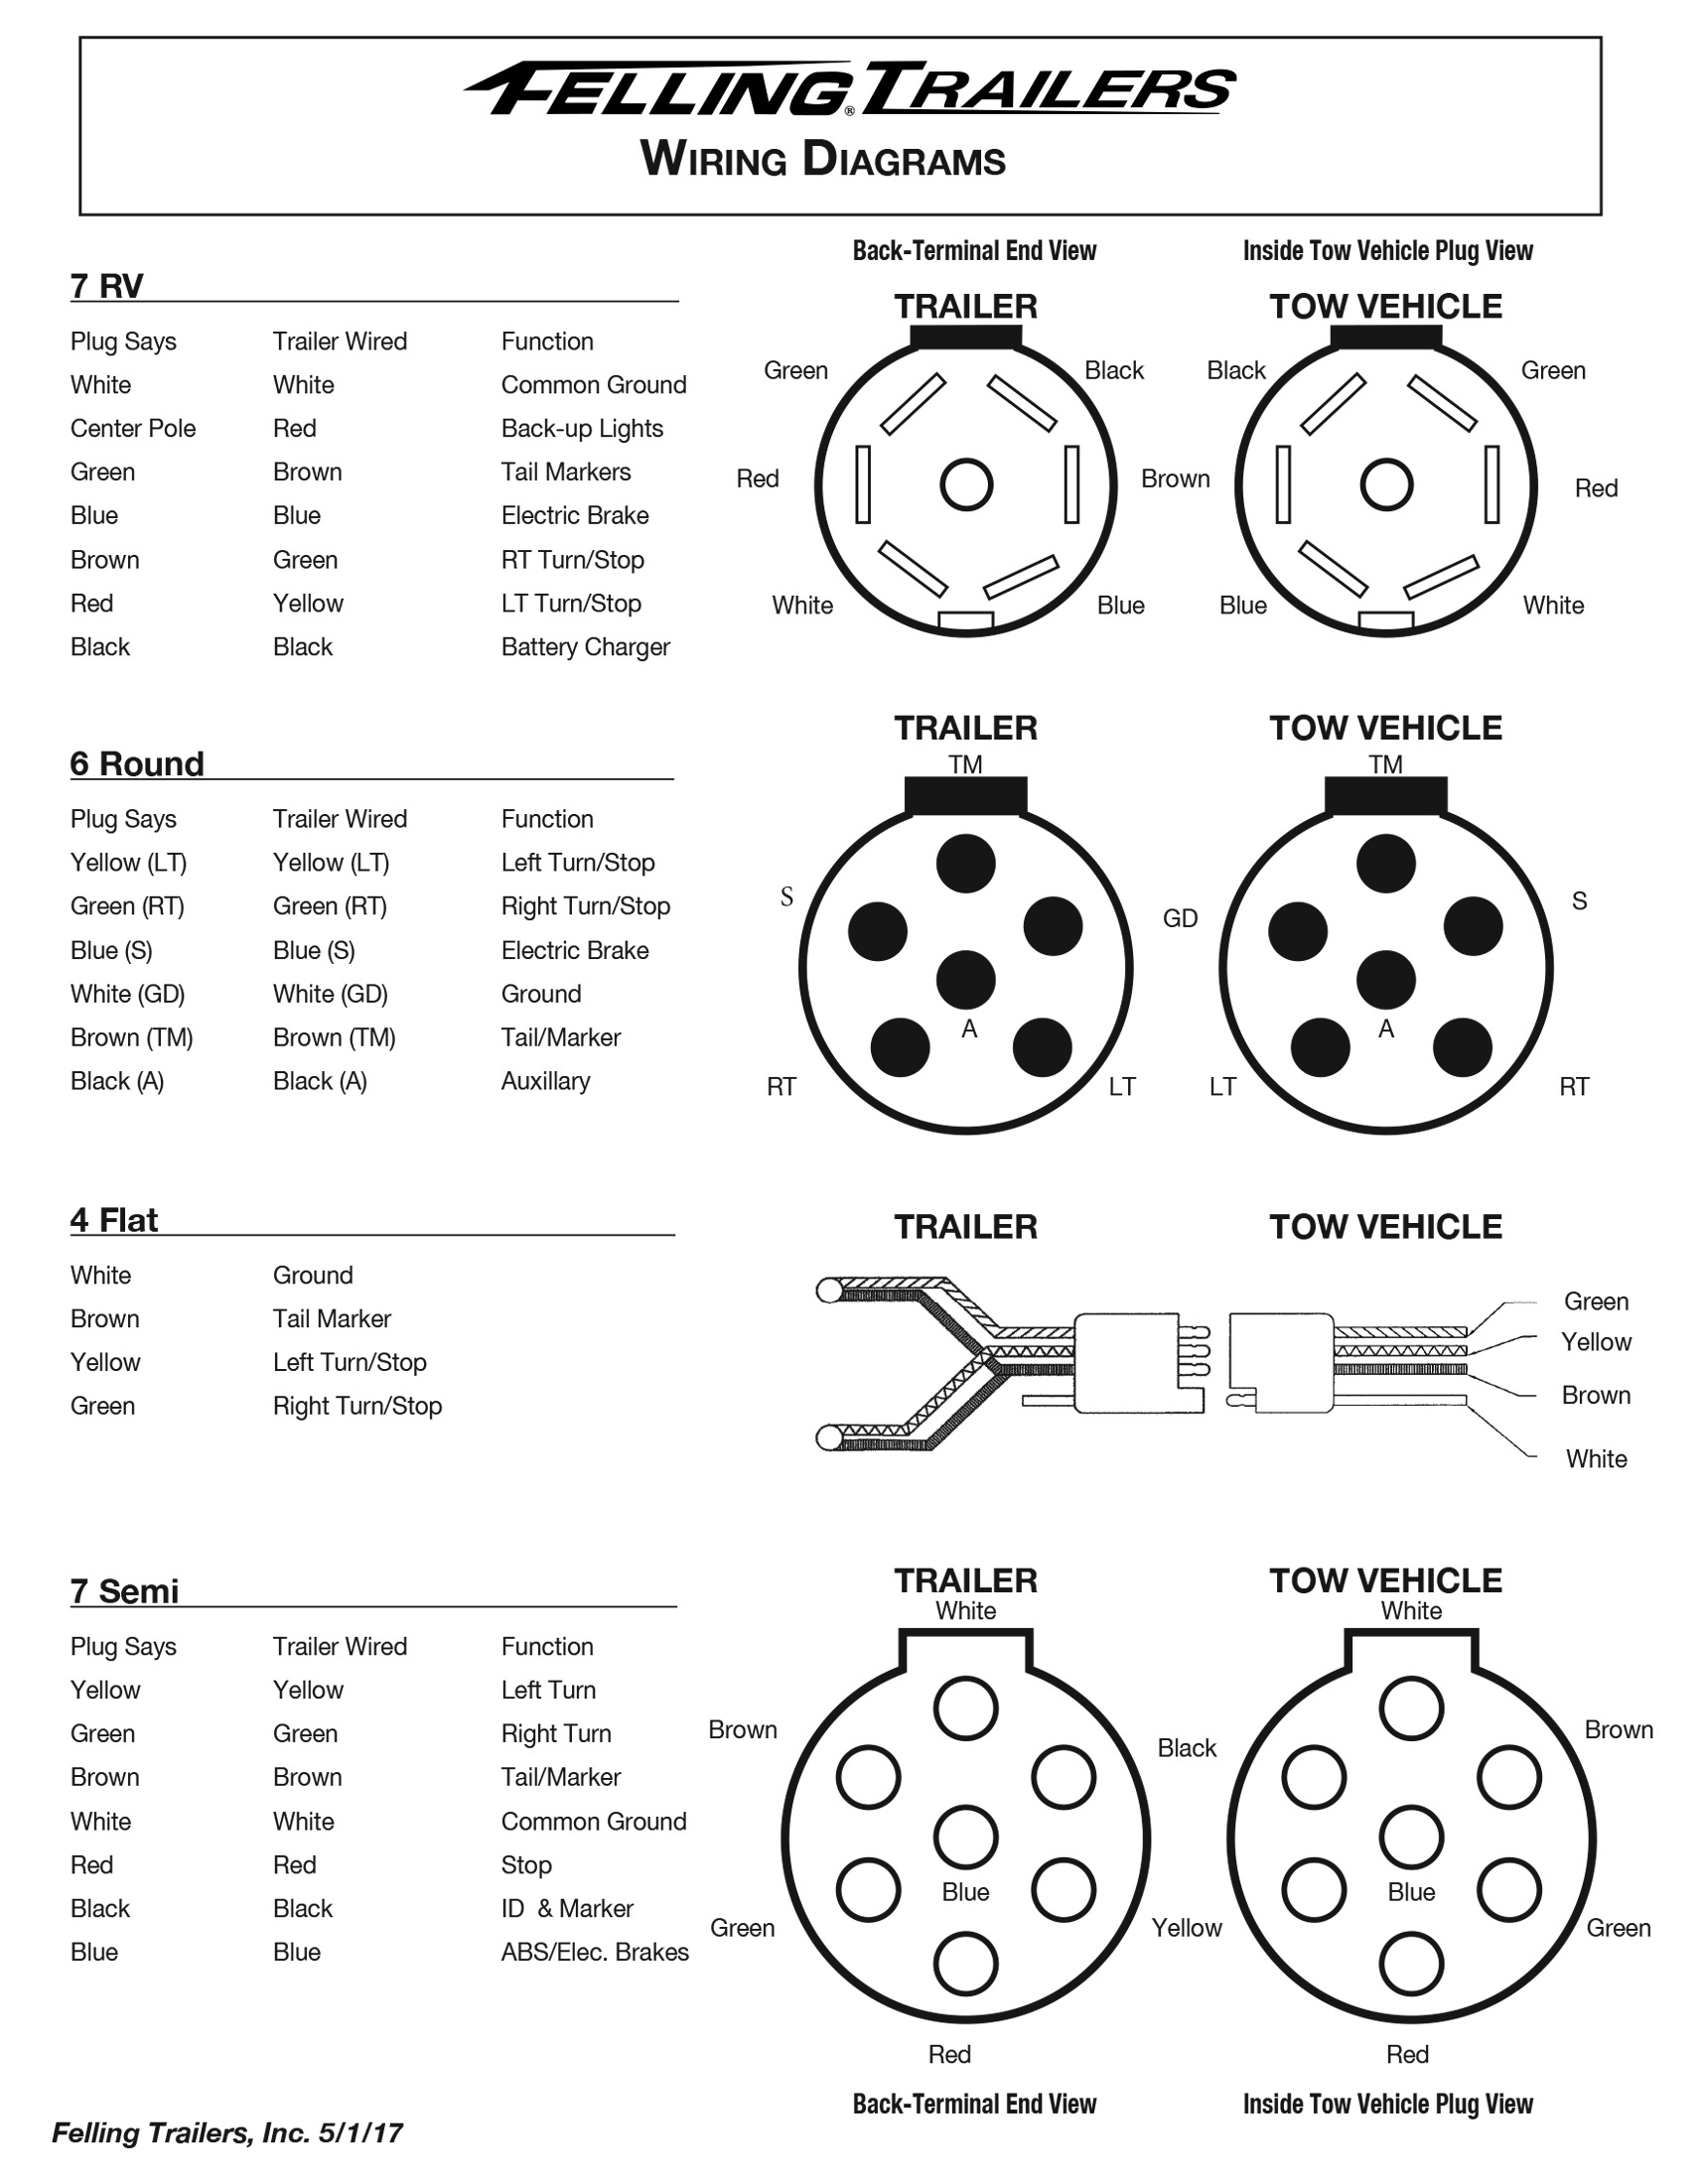 Service- Felling Trailers Wiring Diagrams, Wheel Toque - Trailer Wiring Diagram New Zealand